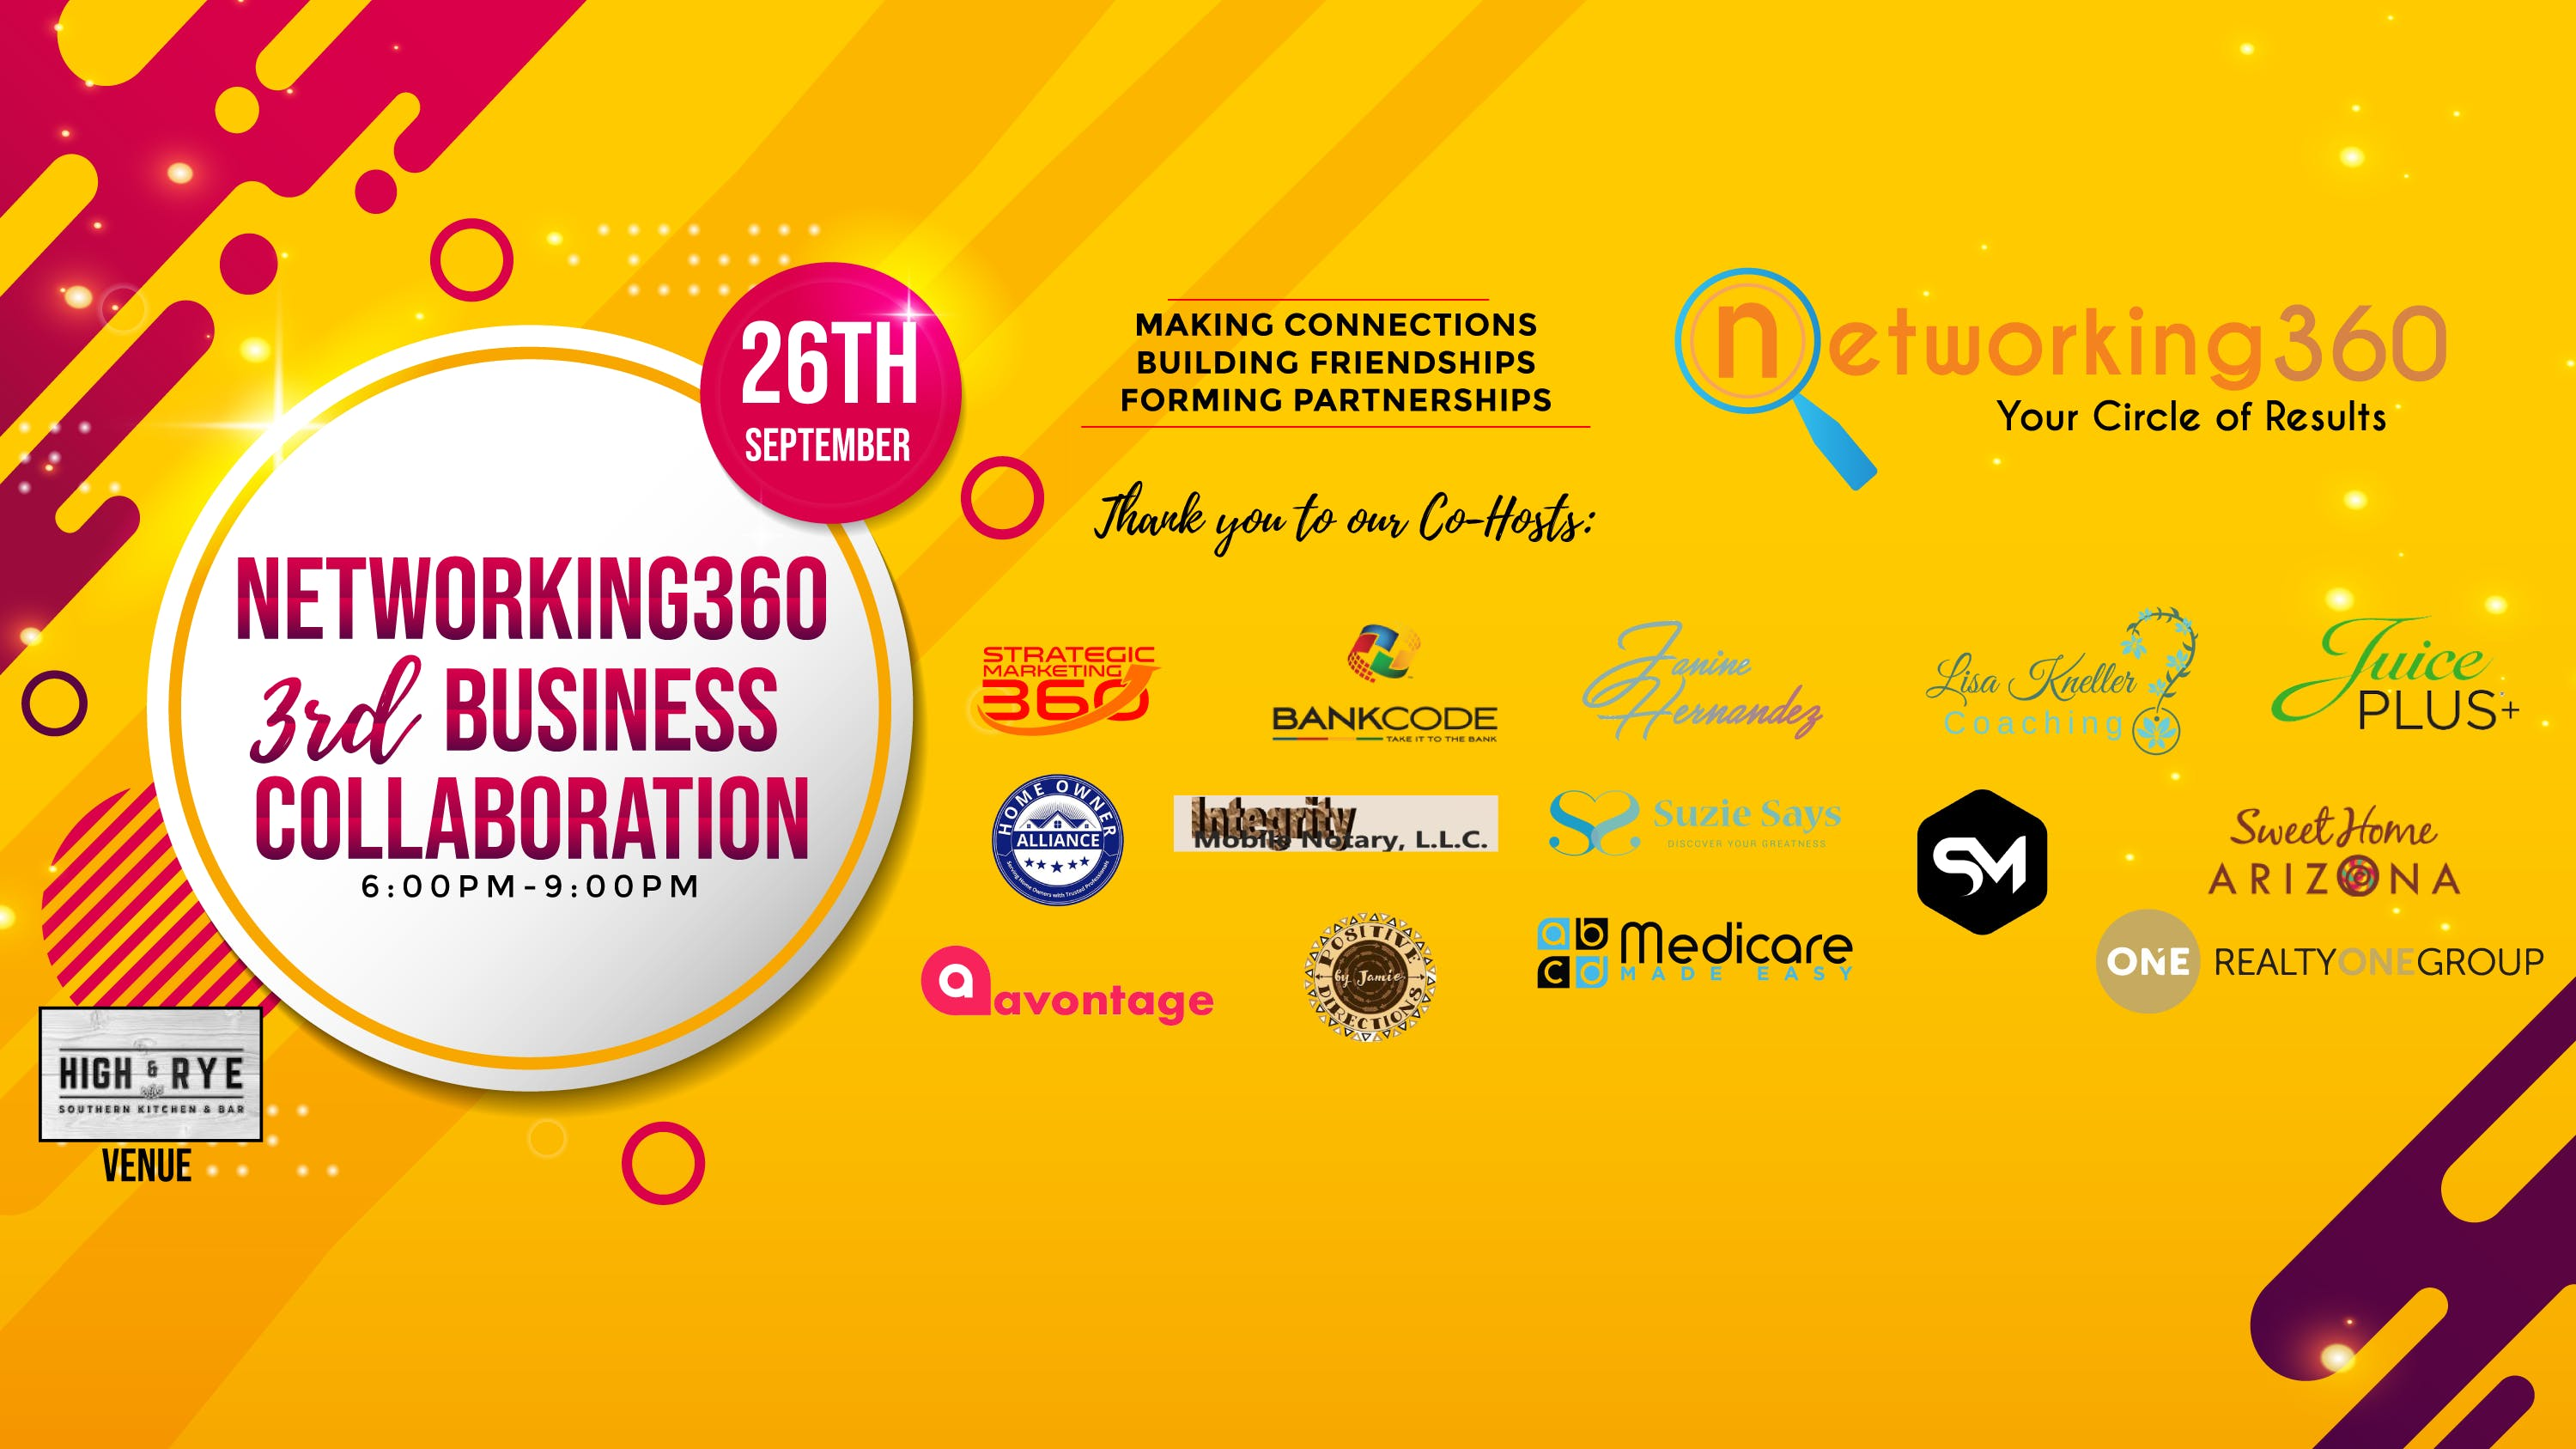 Networking360 3rd Business Collaboration